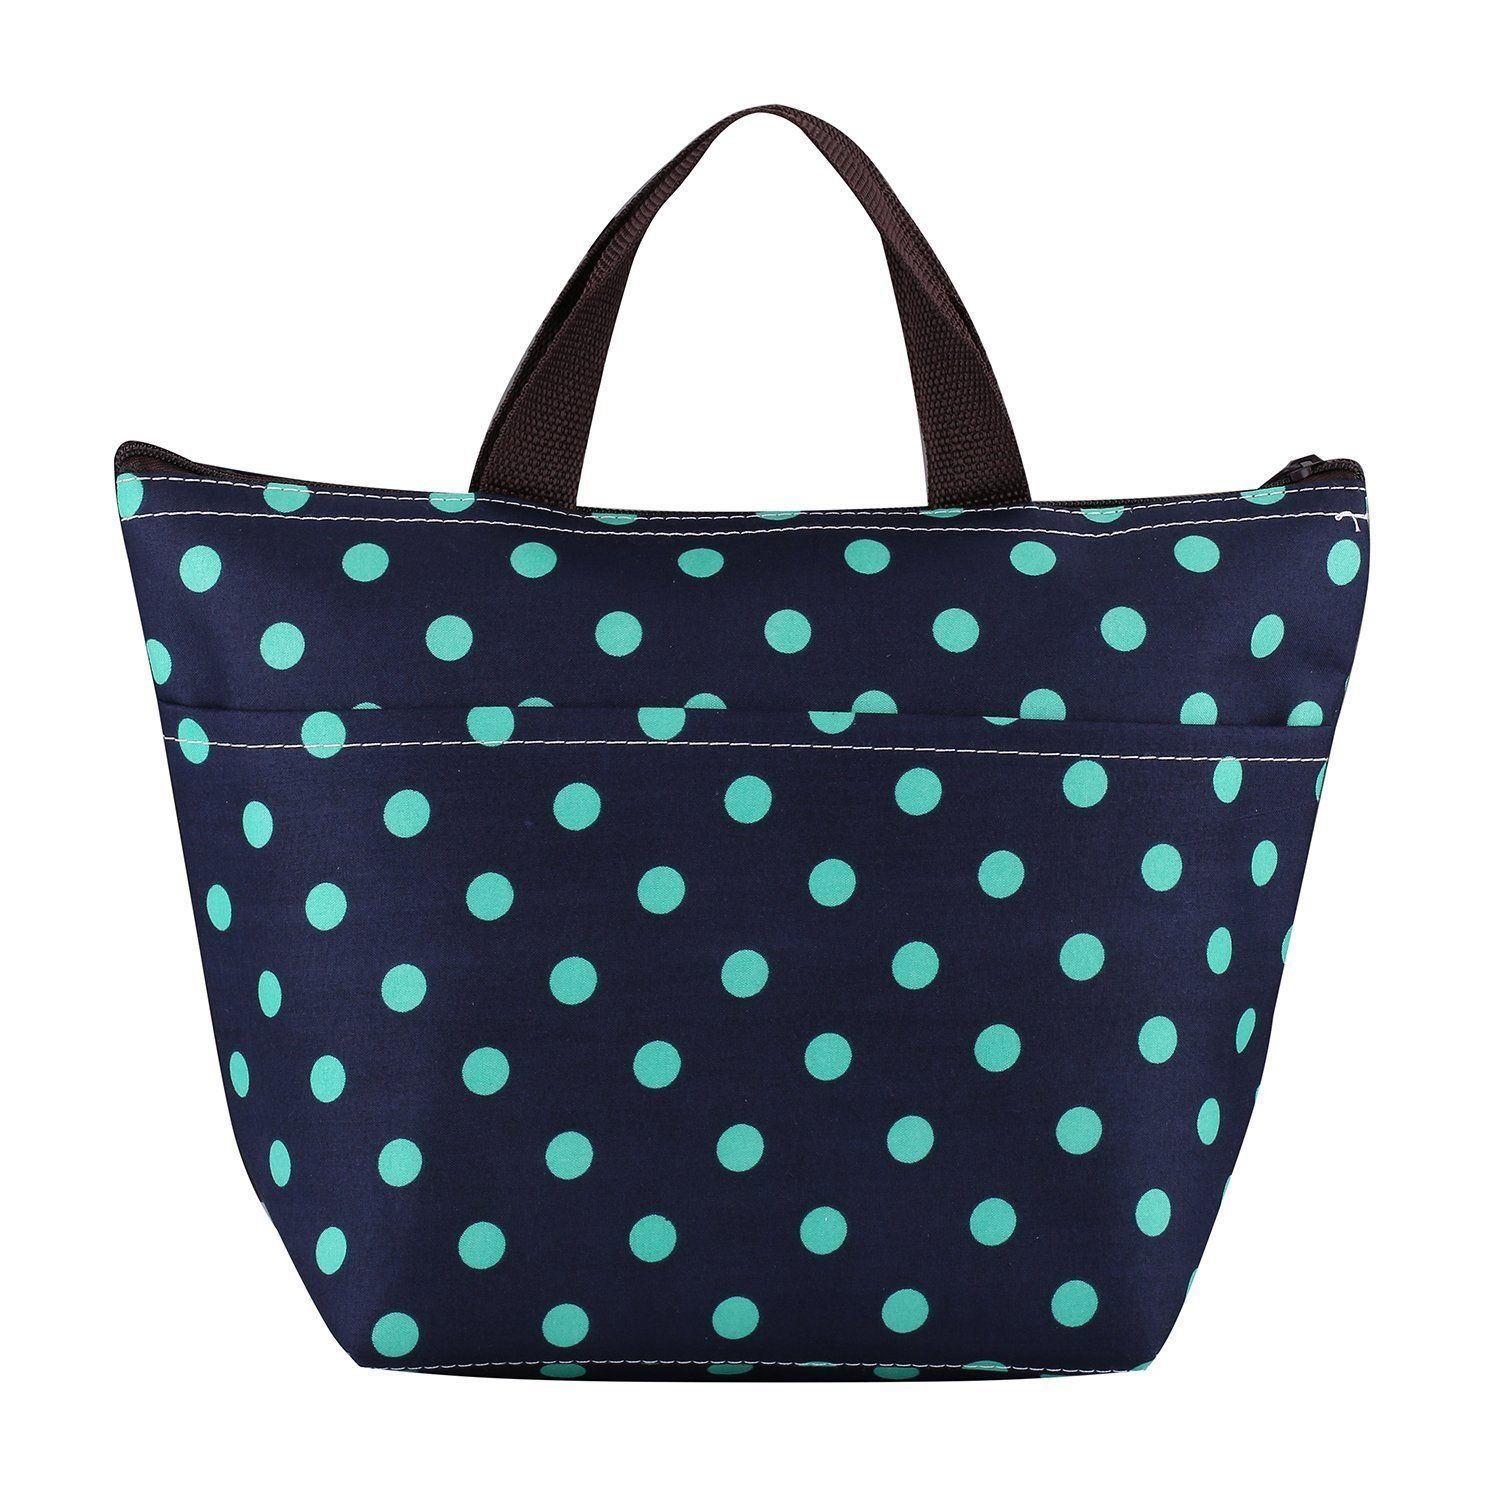 Insulated Lunch Bag Women Tote Thermal Box Cooler Travel Picnic girls Beach Bag